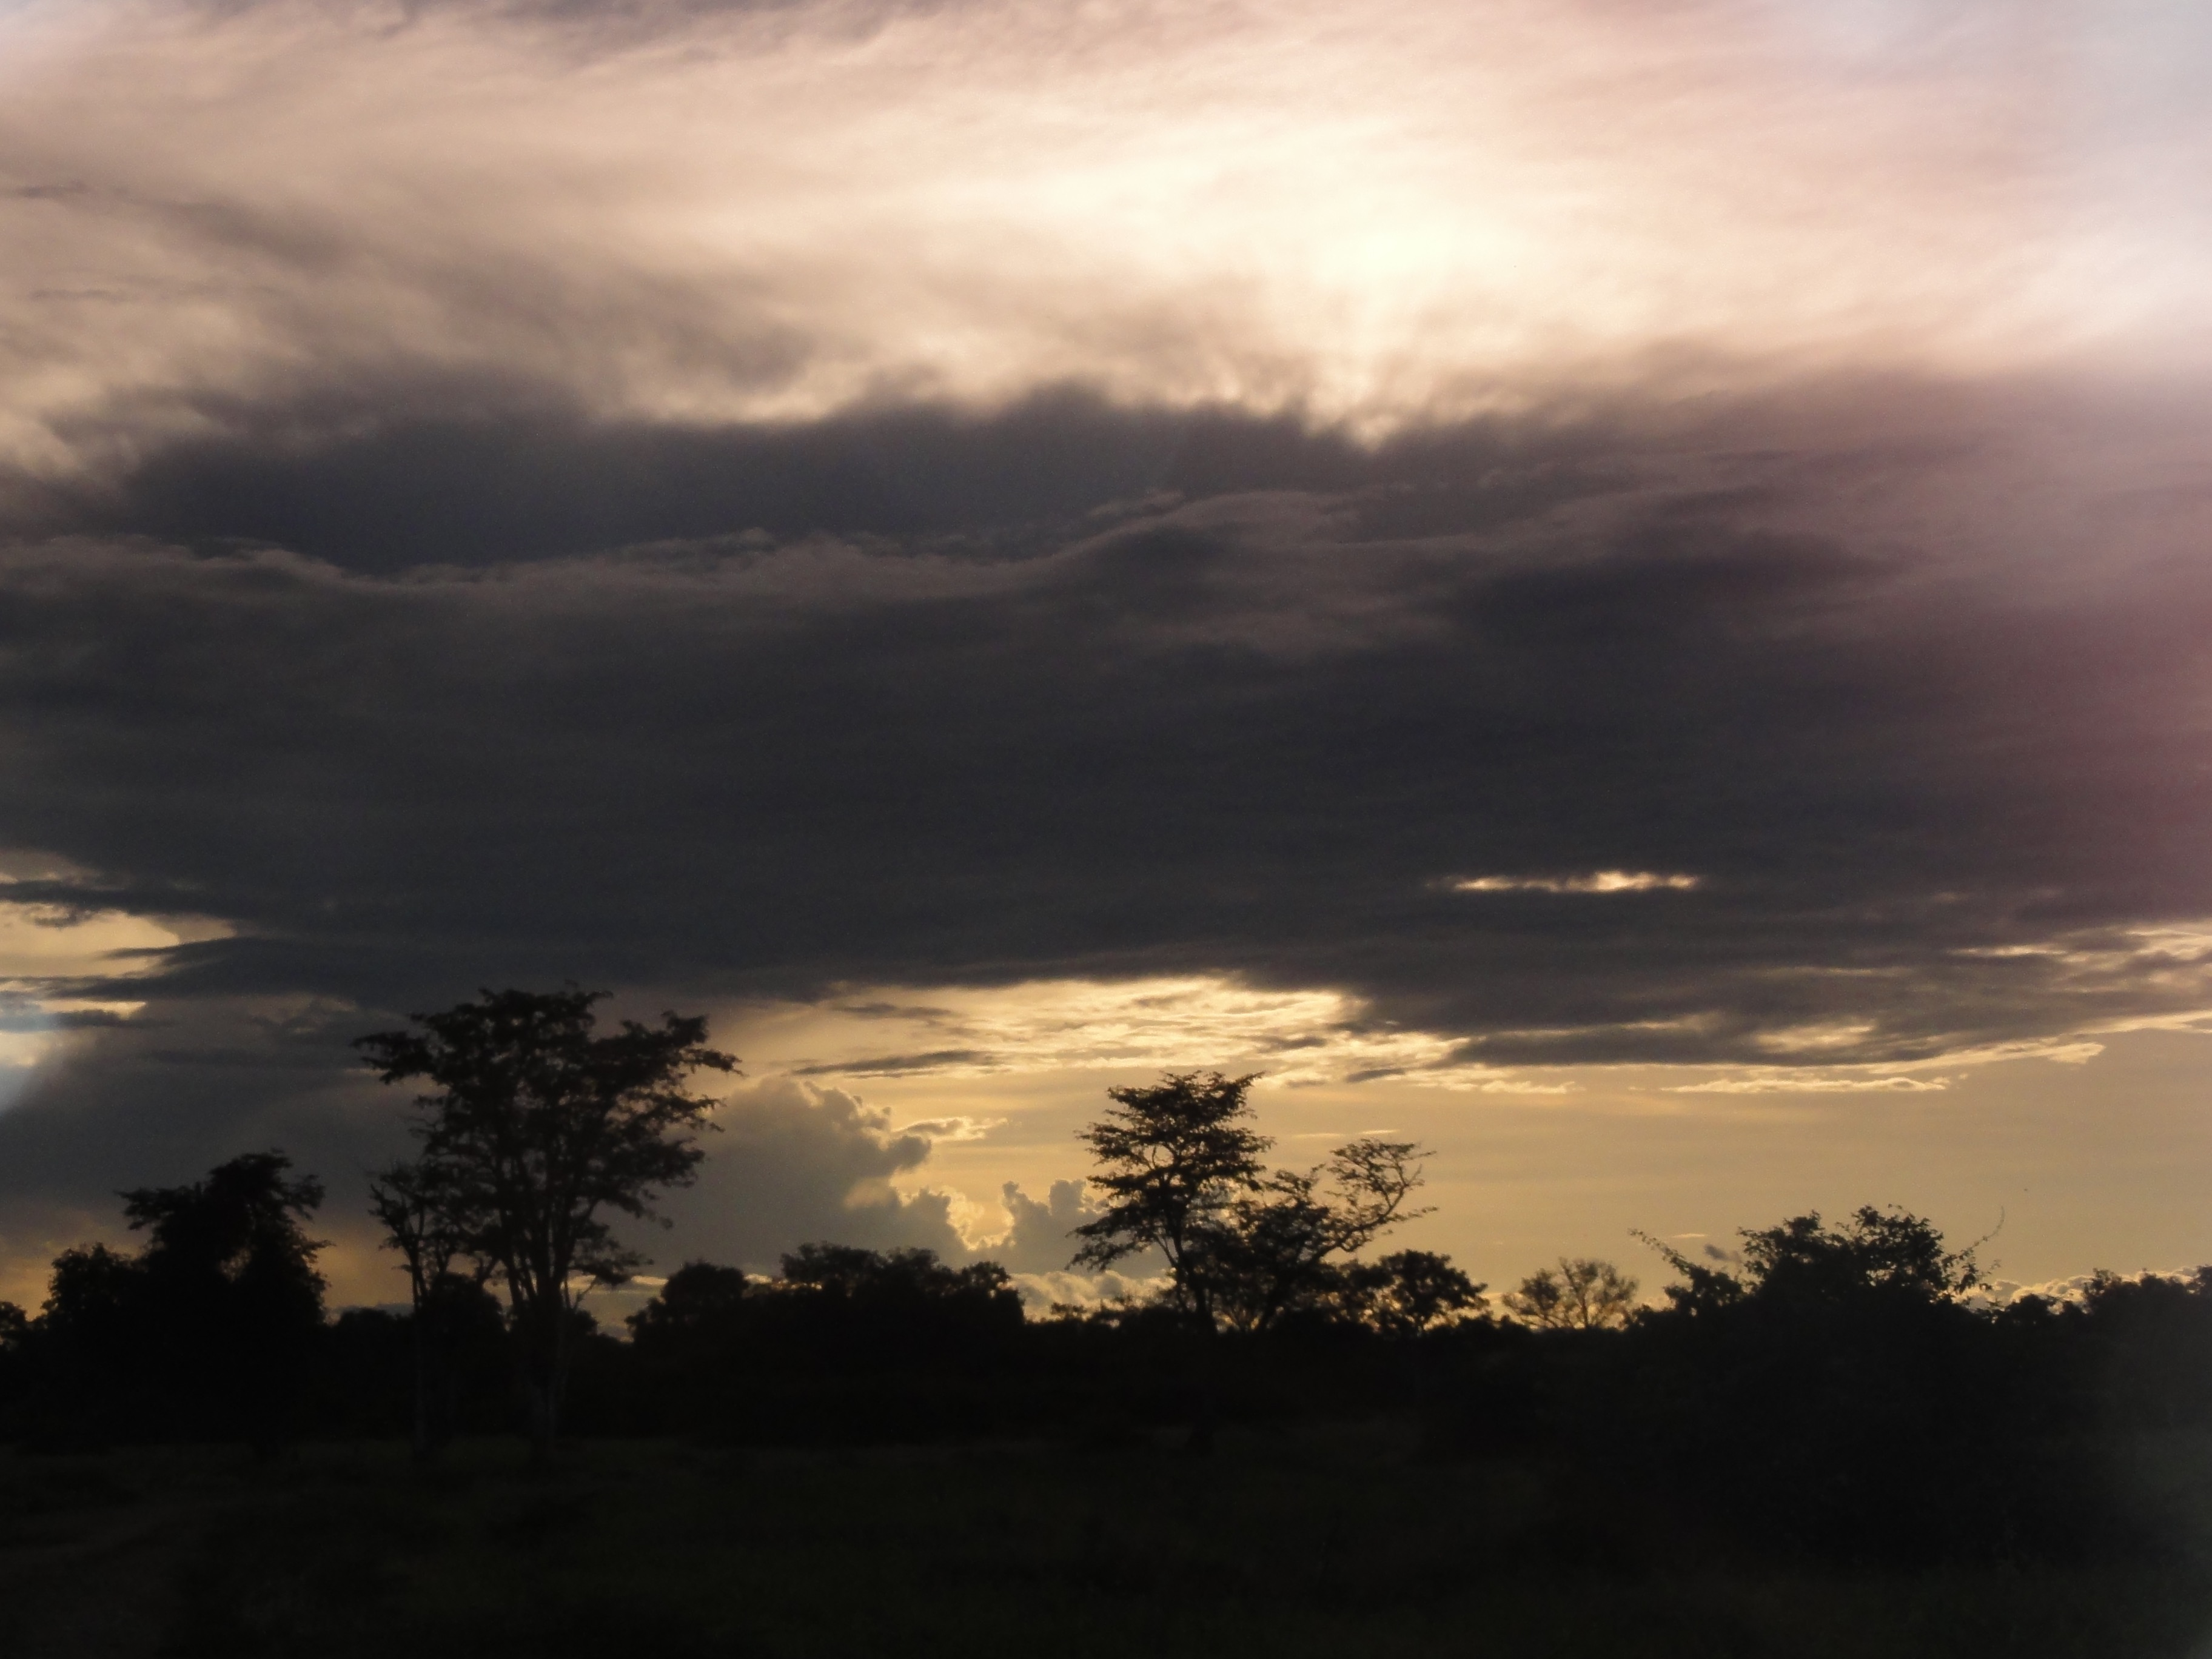 Sunset in Lower Zambezi